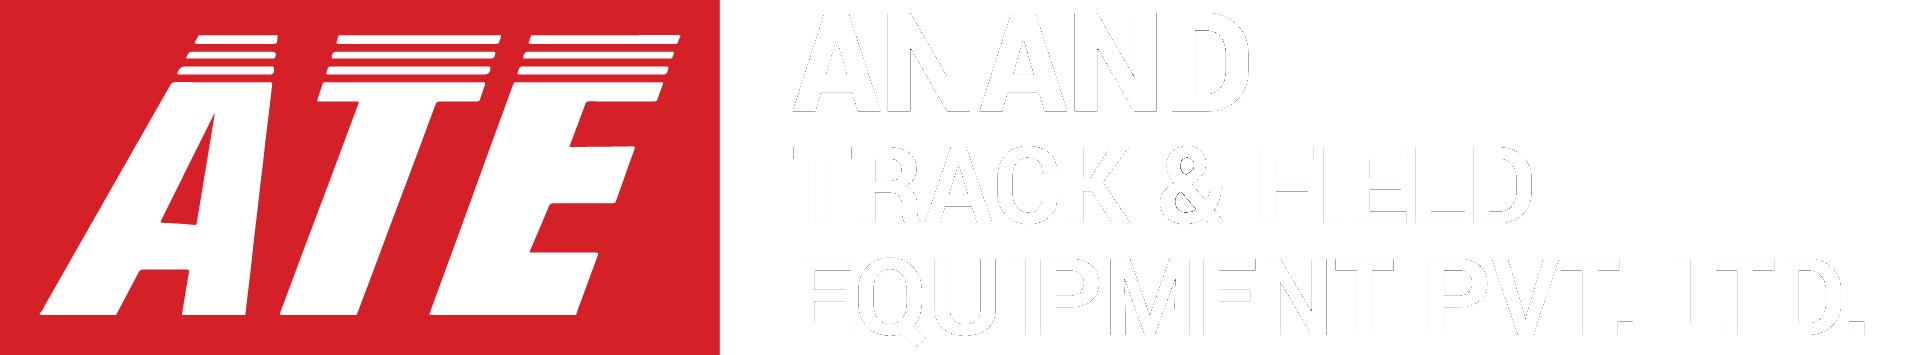 Anand Track and Field Equipment Pvt. Ltd.